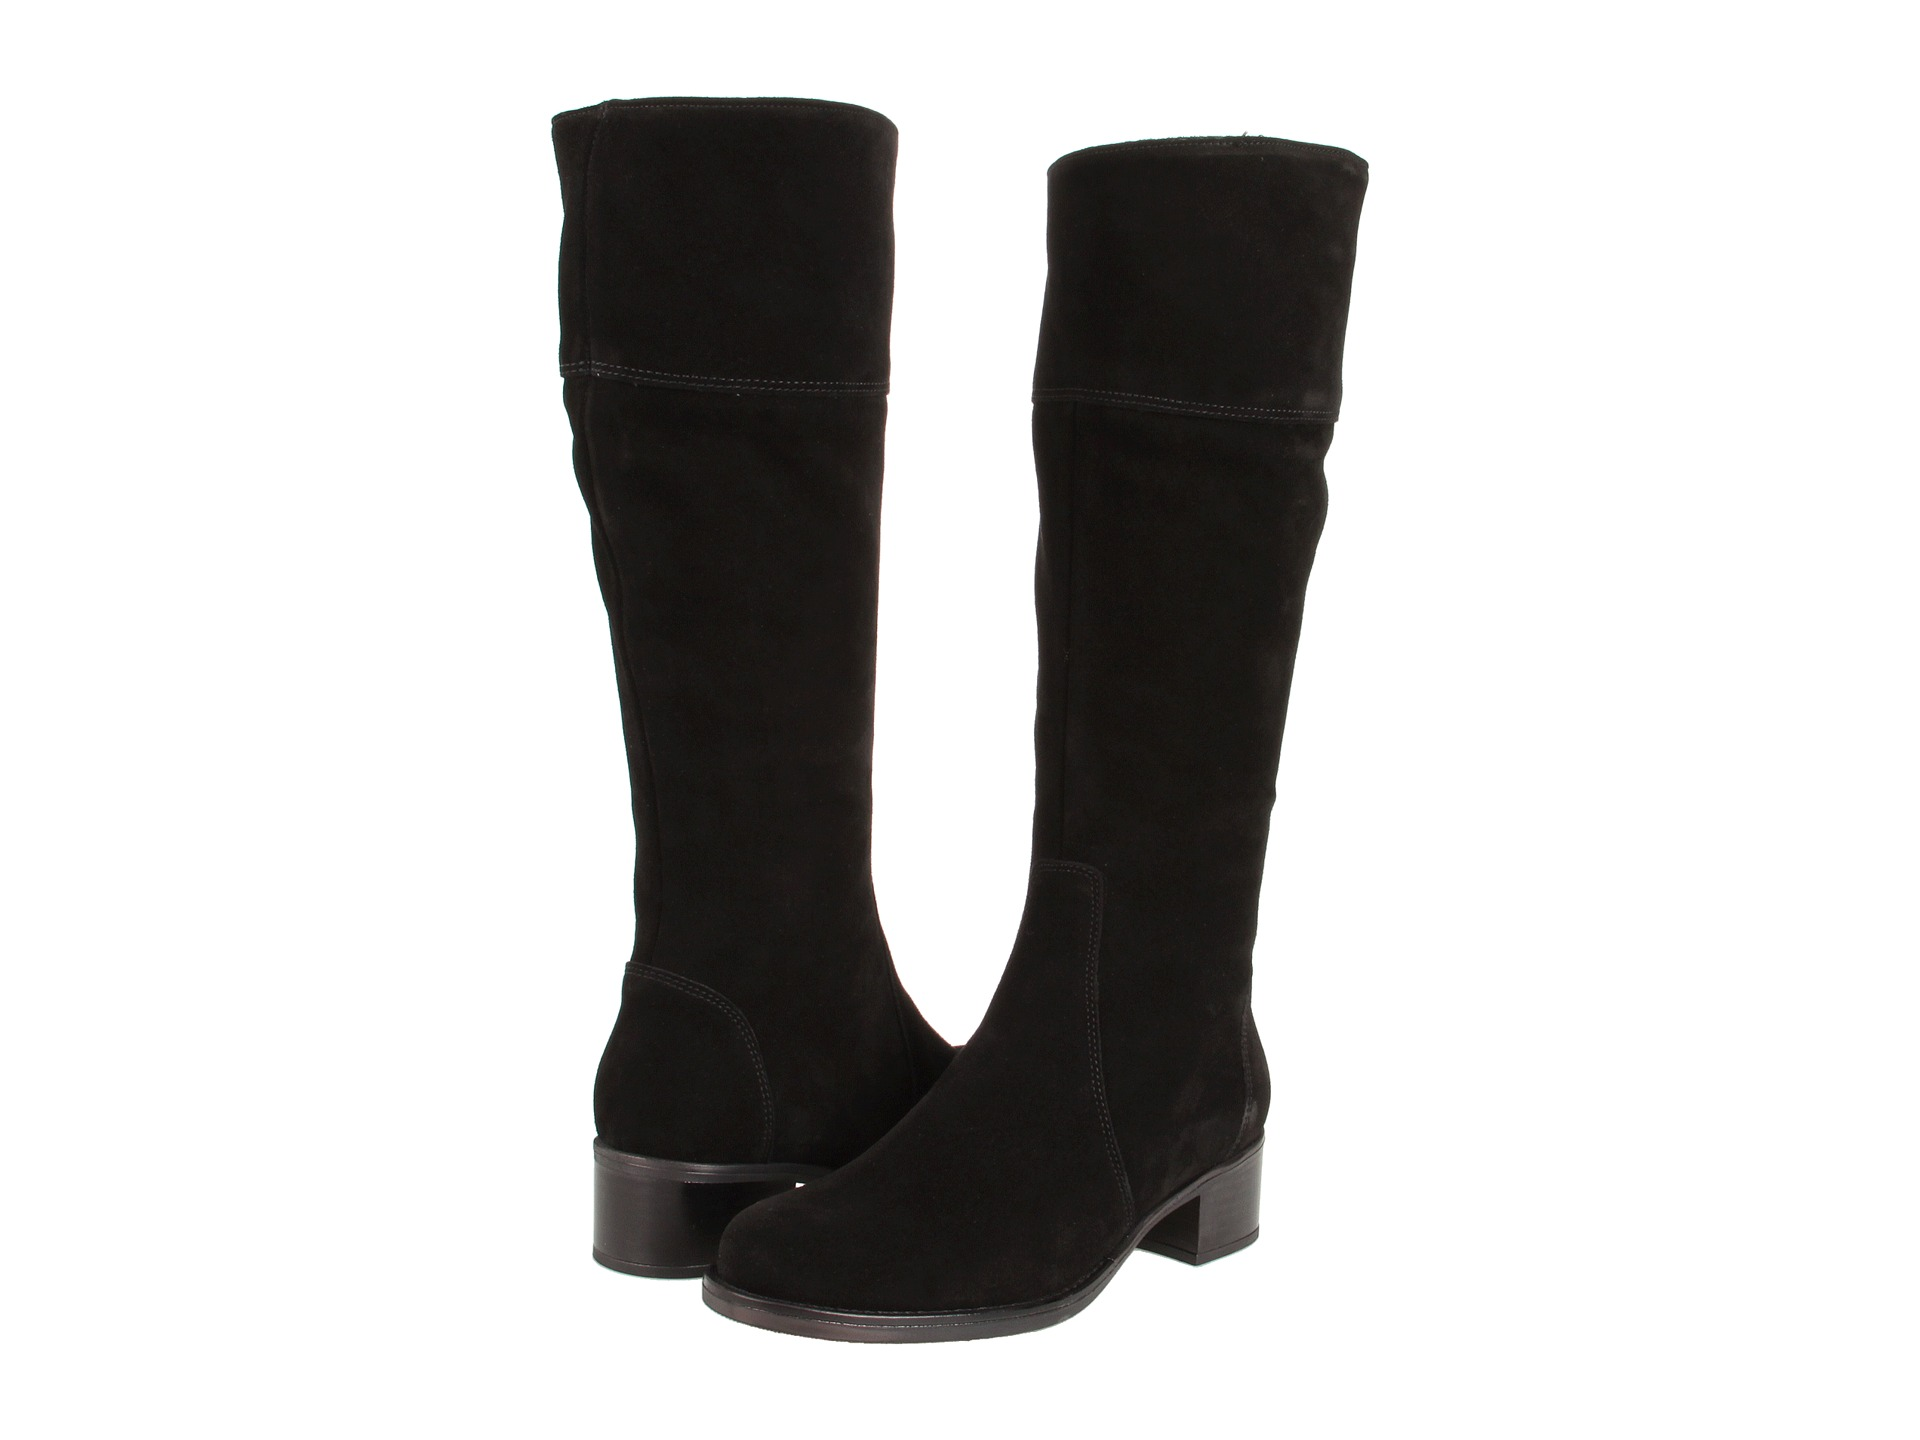 Black Suede Boots For Women Coltford Boots